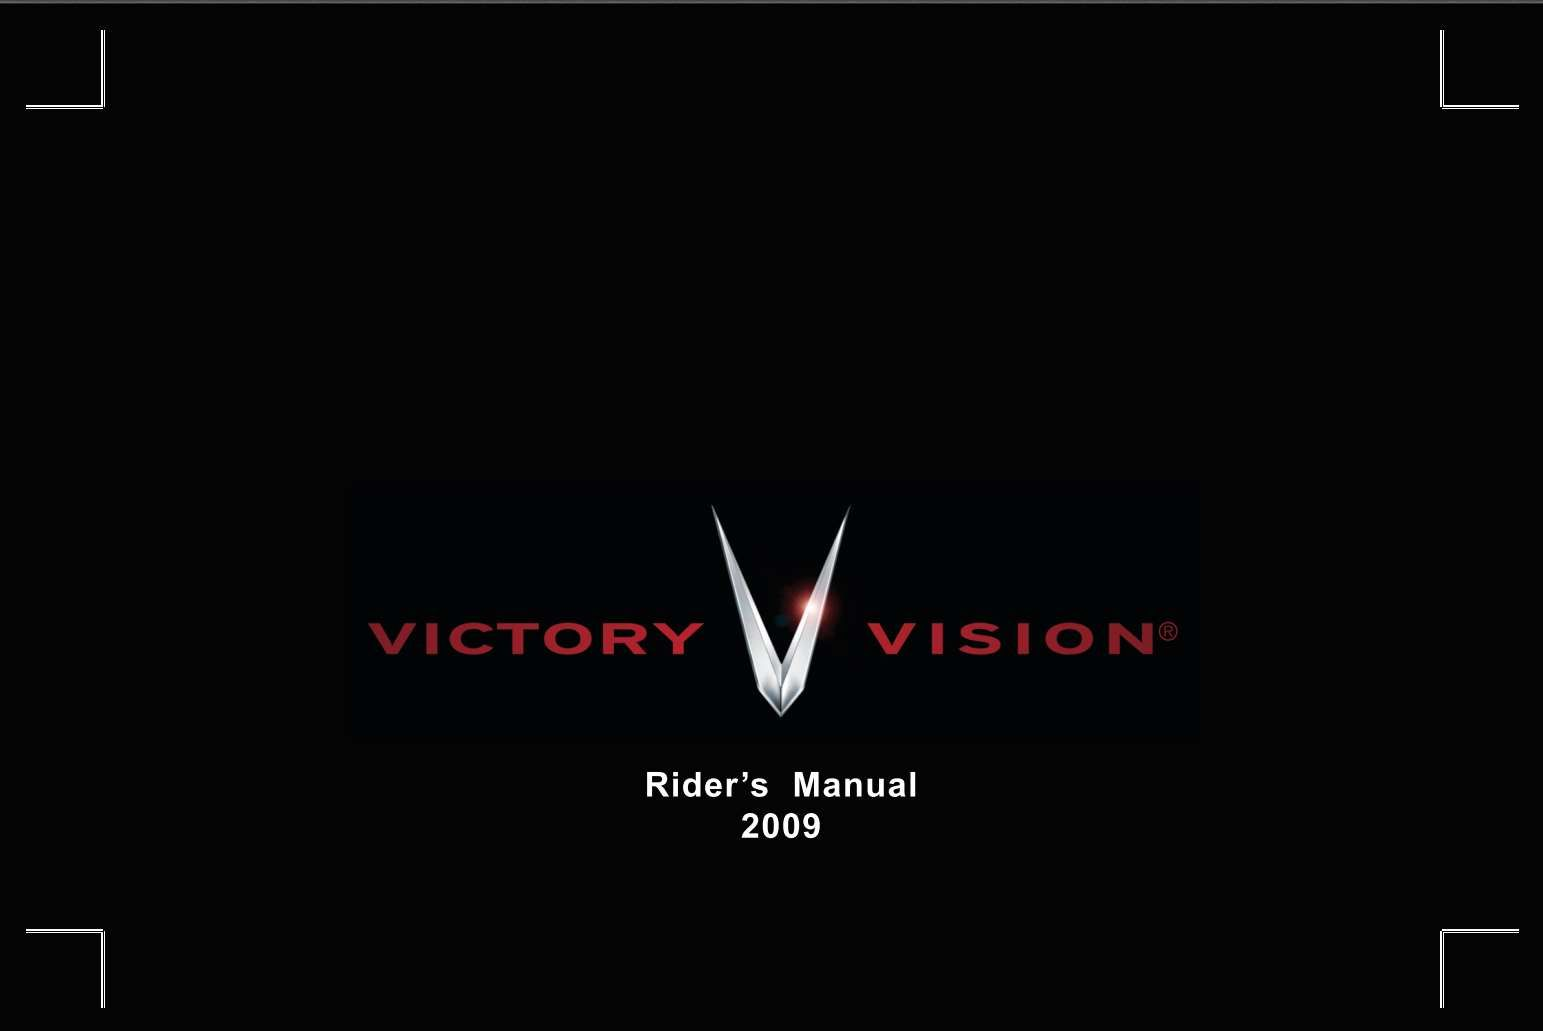 Victory Vision 2009 Owner S Manual Has Been Published On Procarmanuals Com Https Procarmanuals Com Victory Vision 2009 Owners M In 2020 Owners Manuals Manual Visions